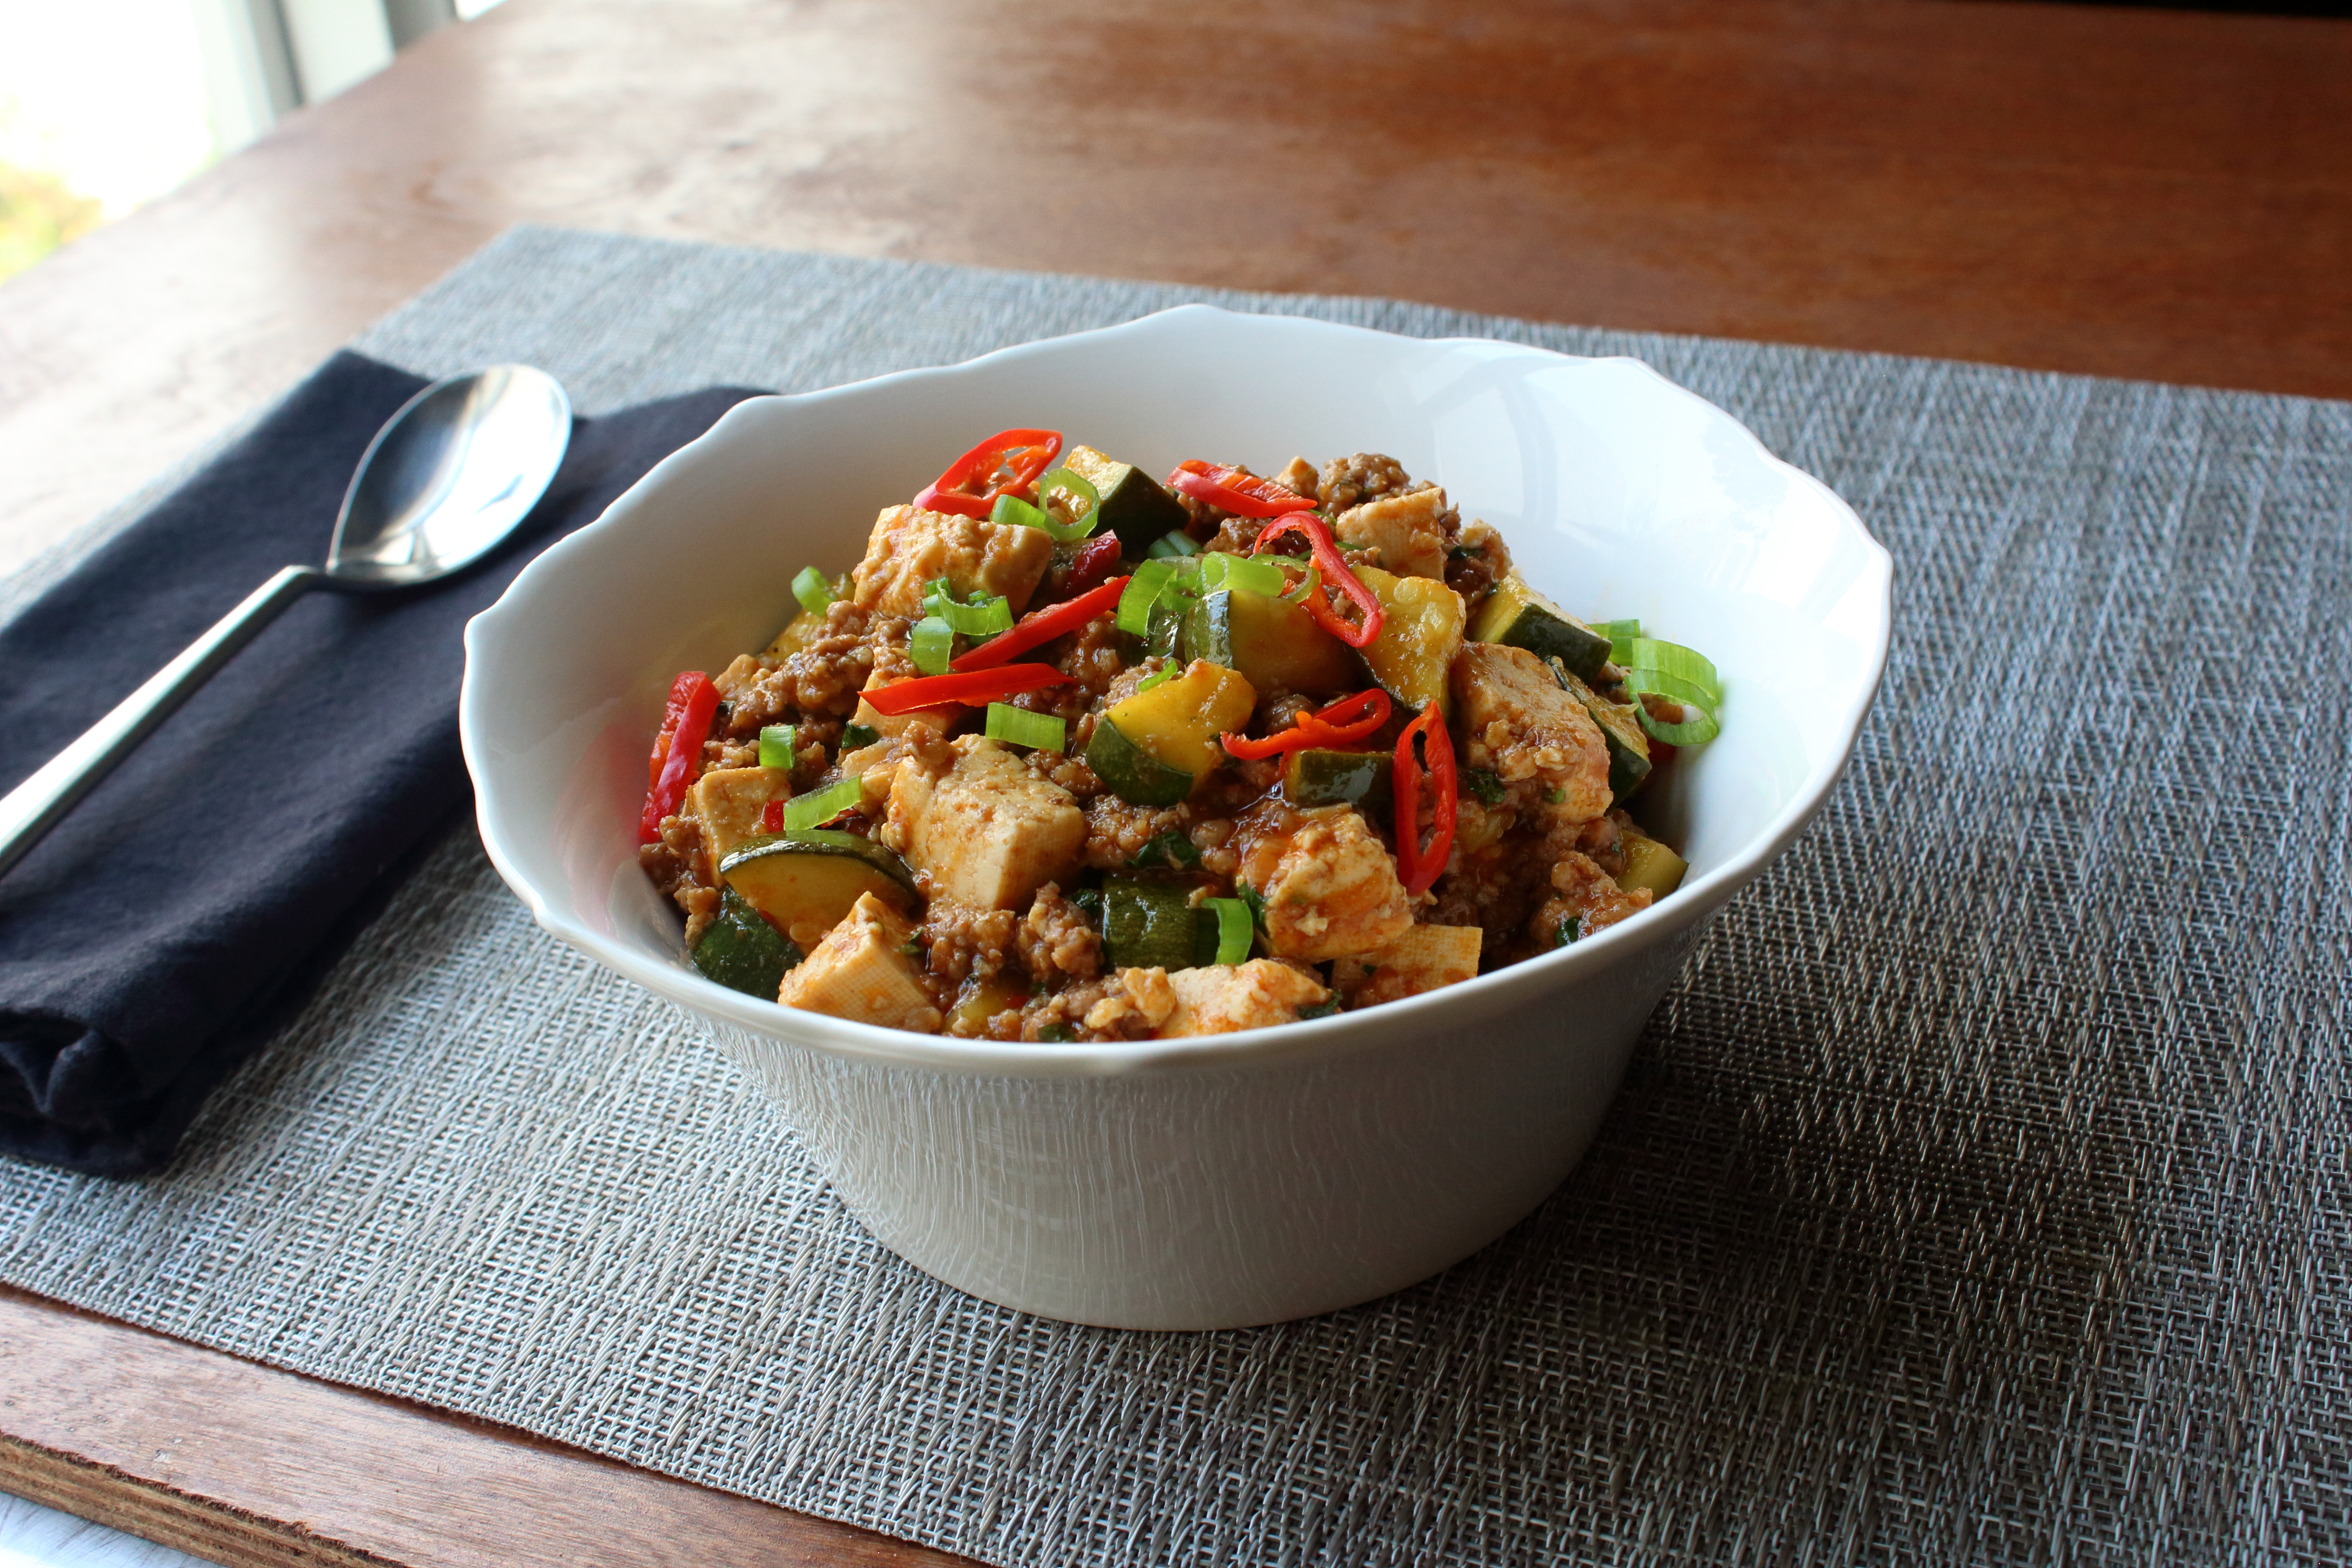 Spicy Pork and Vegetable Tofu